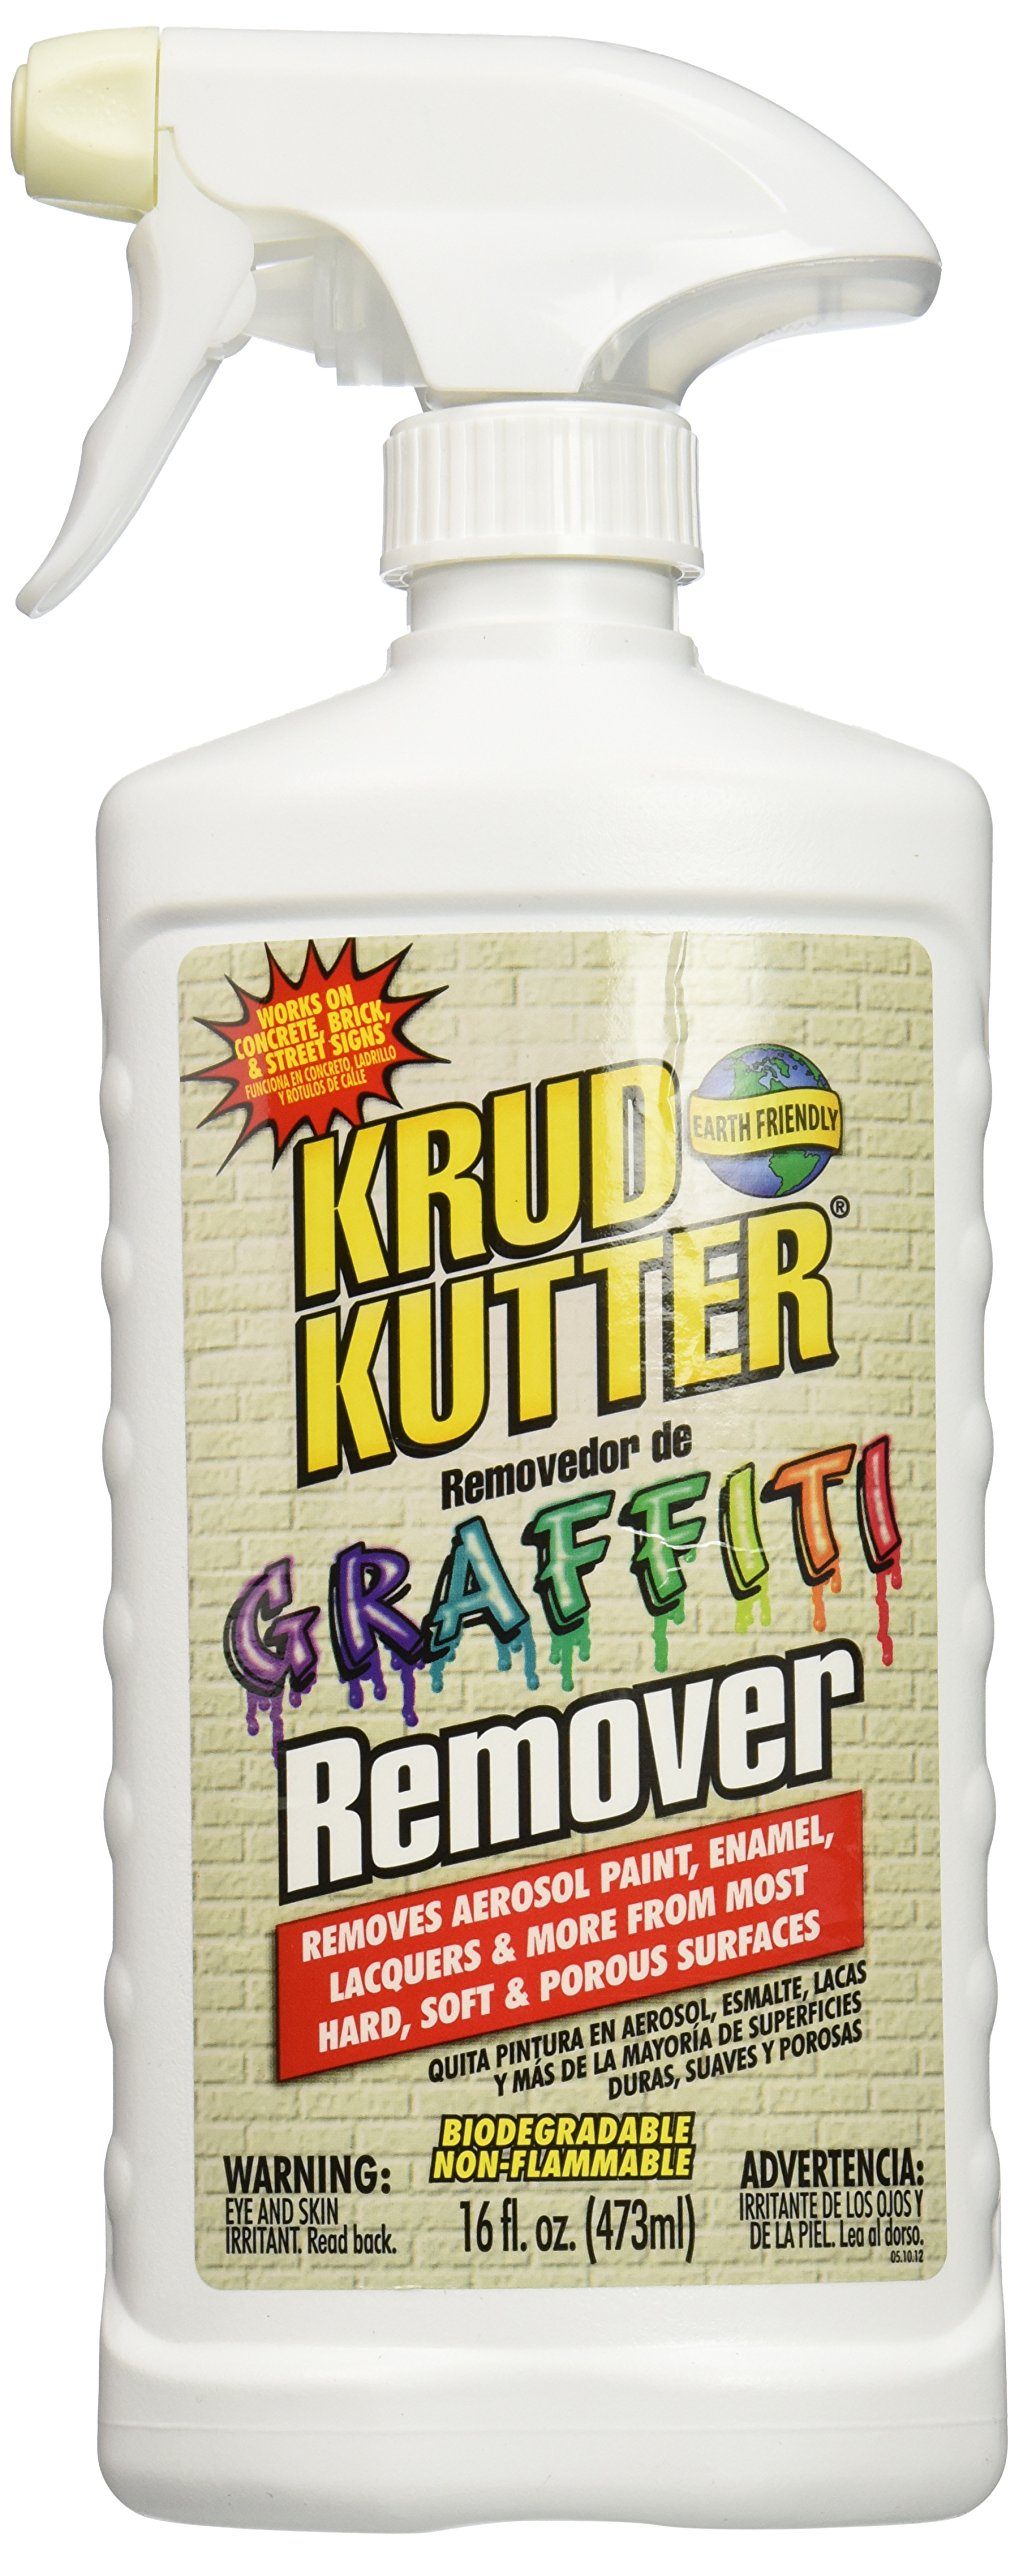 Krud Kutter GR16/4 Graffiti Remover with 16-Ounce Trigger Spray